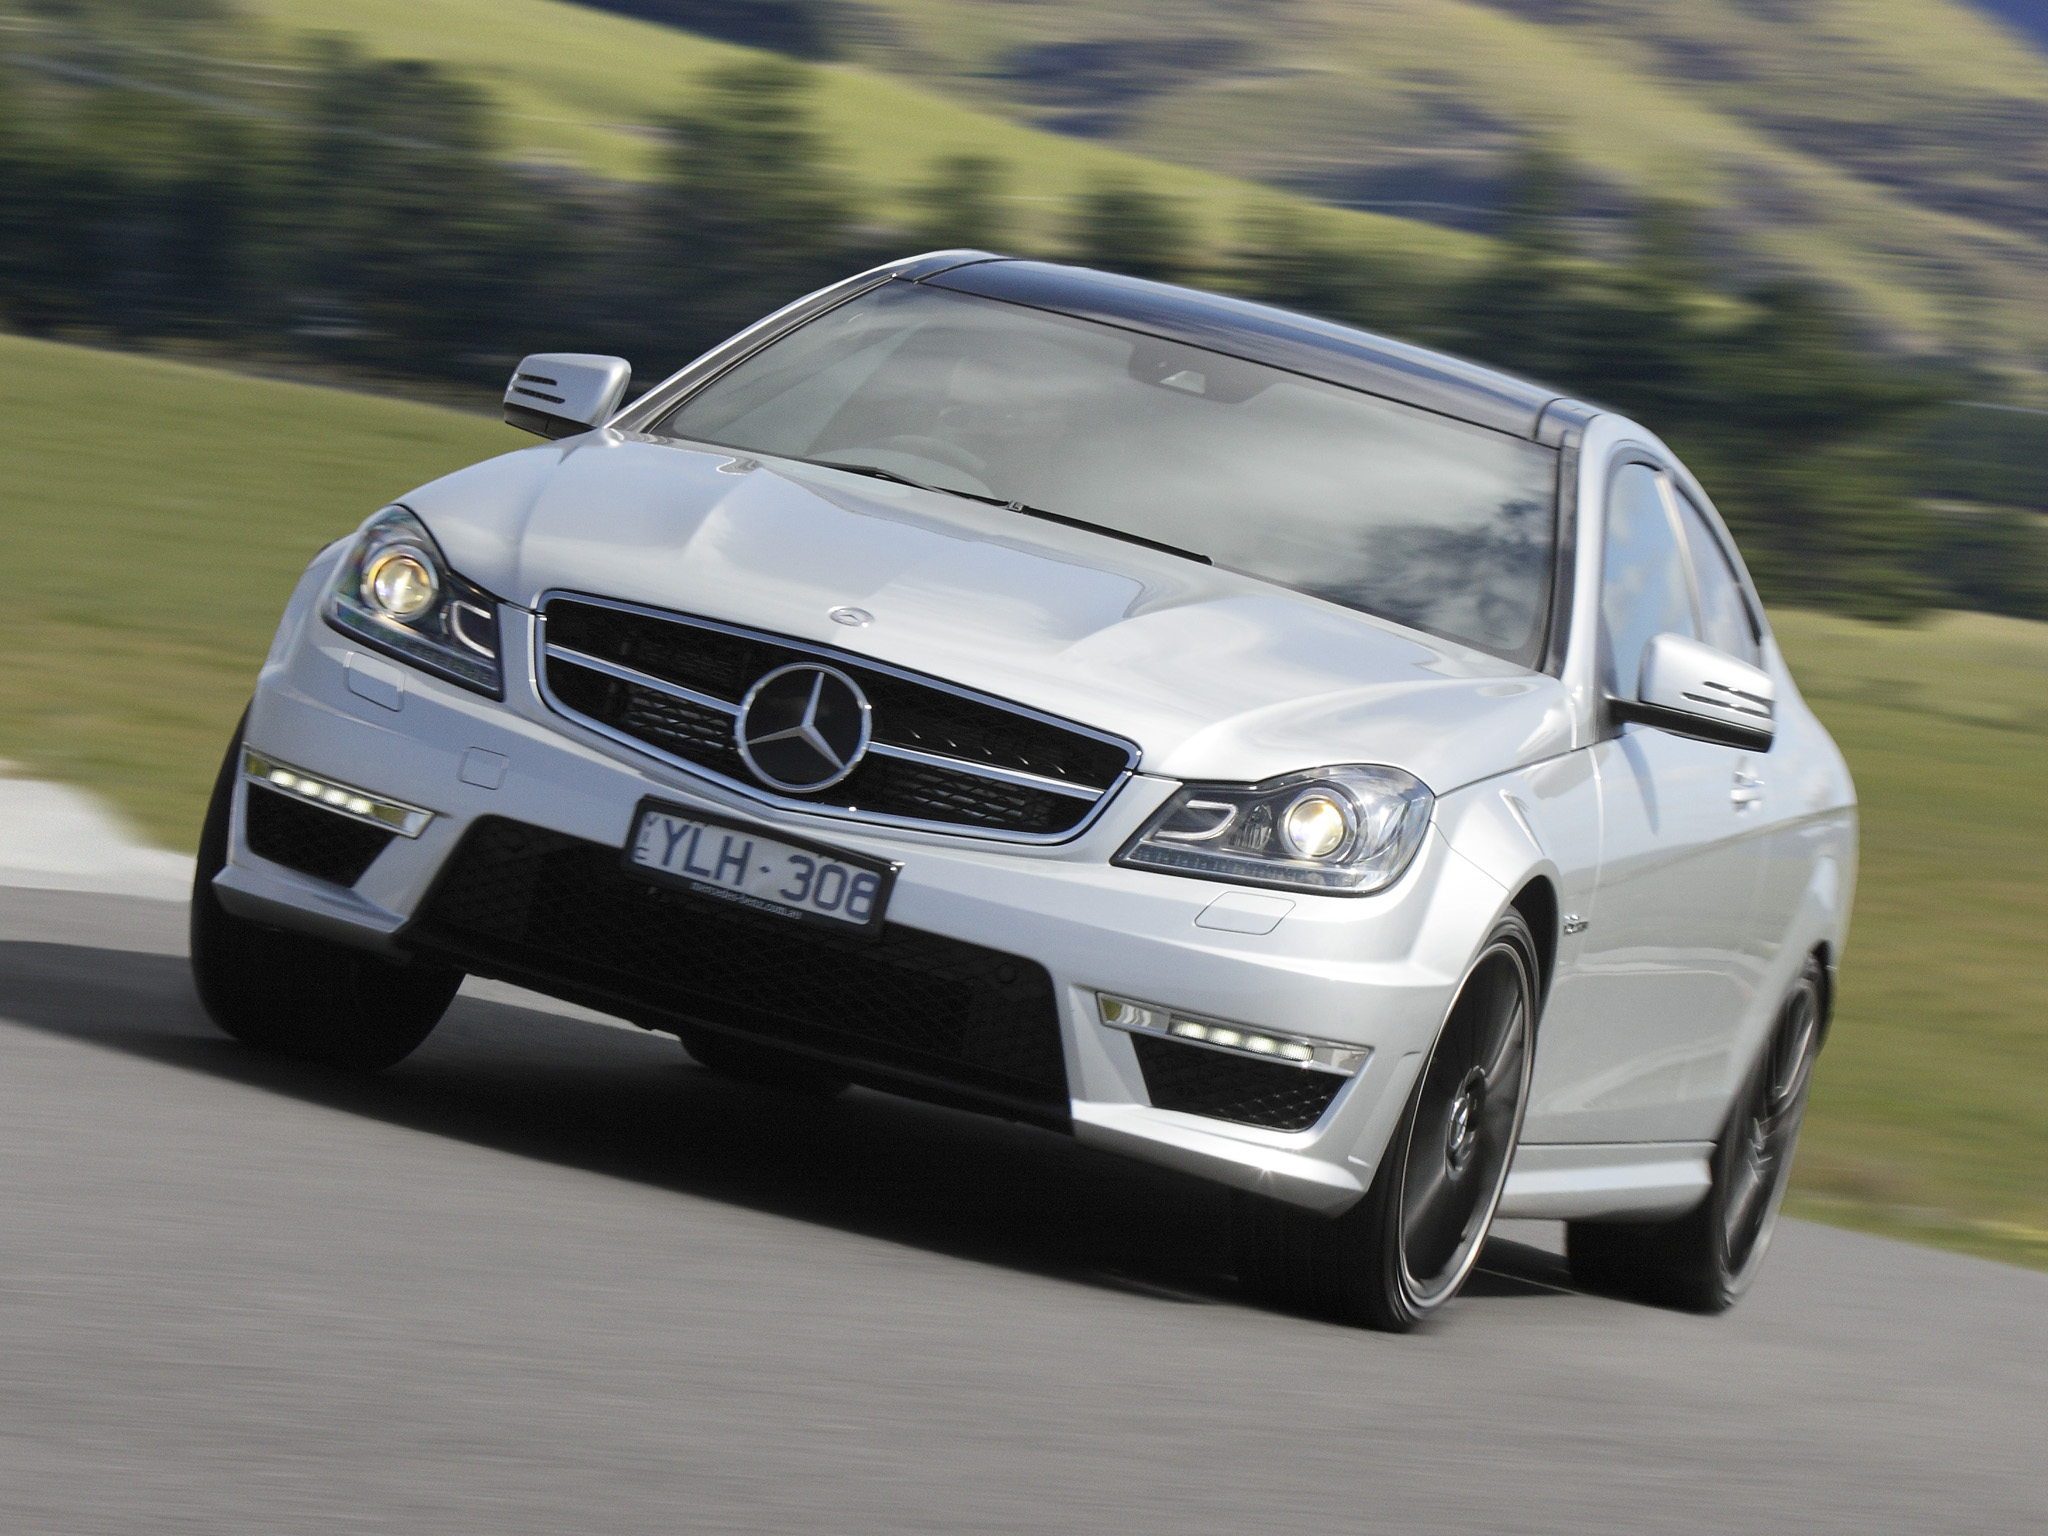 Mercedes-Benz C63 AMG Coupe photo 96461